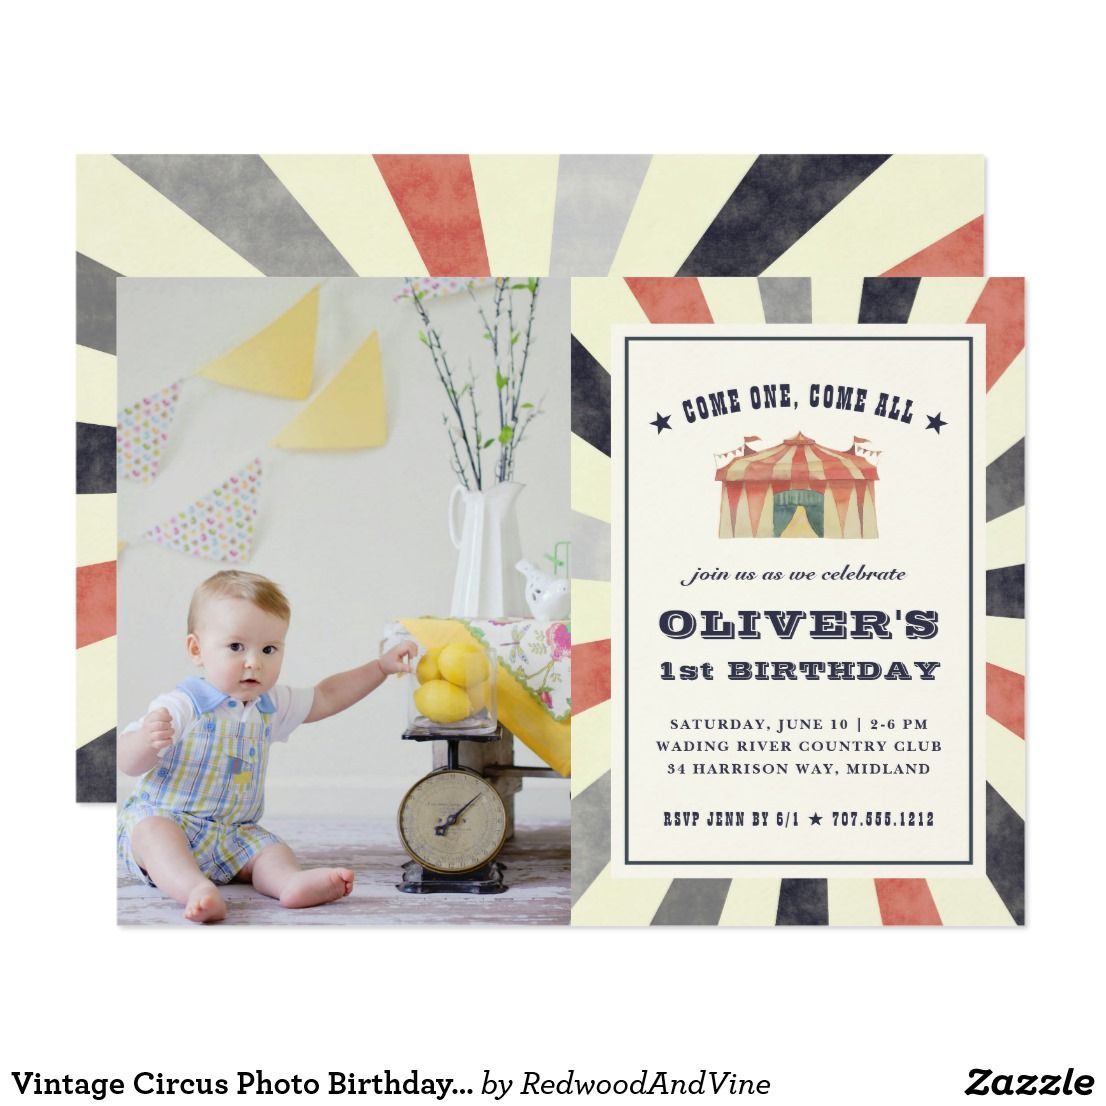 Vintage circus photo birthday party invitation vintage circus photo birthday party invitation cute vintage style circus theme birthday party invitation features your stopboris Gallery